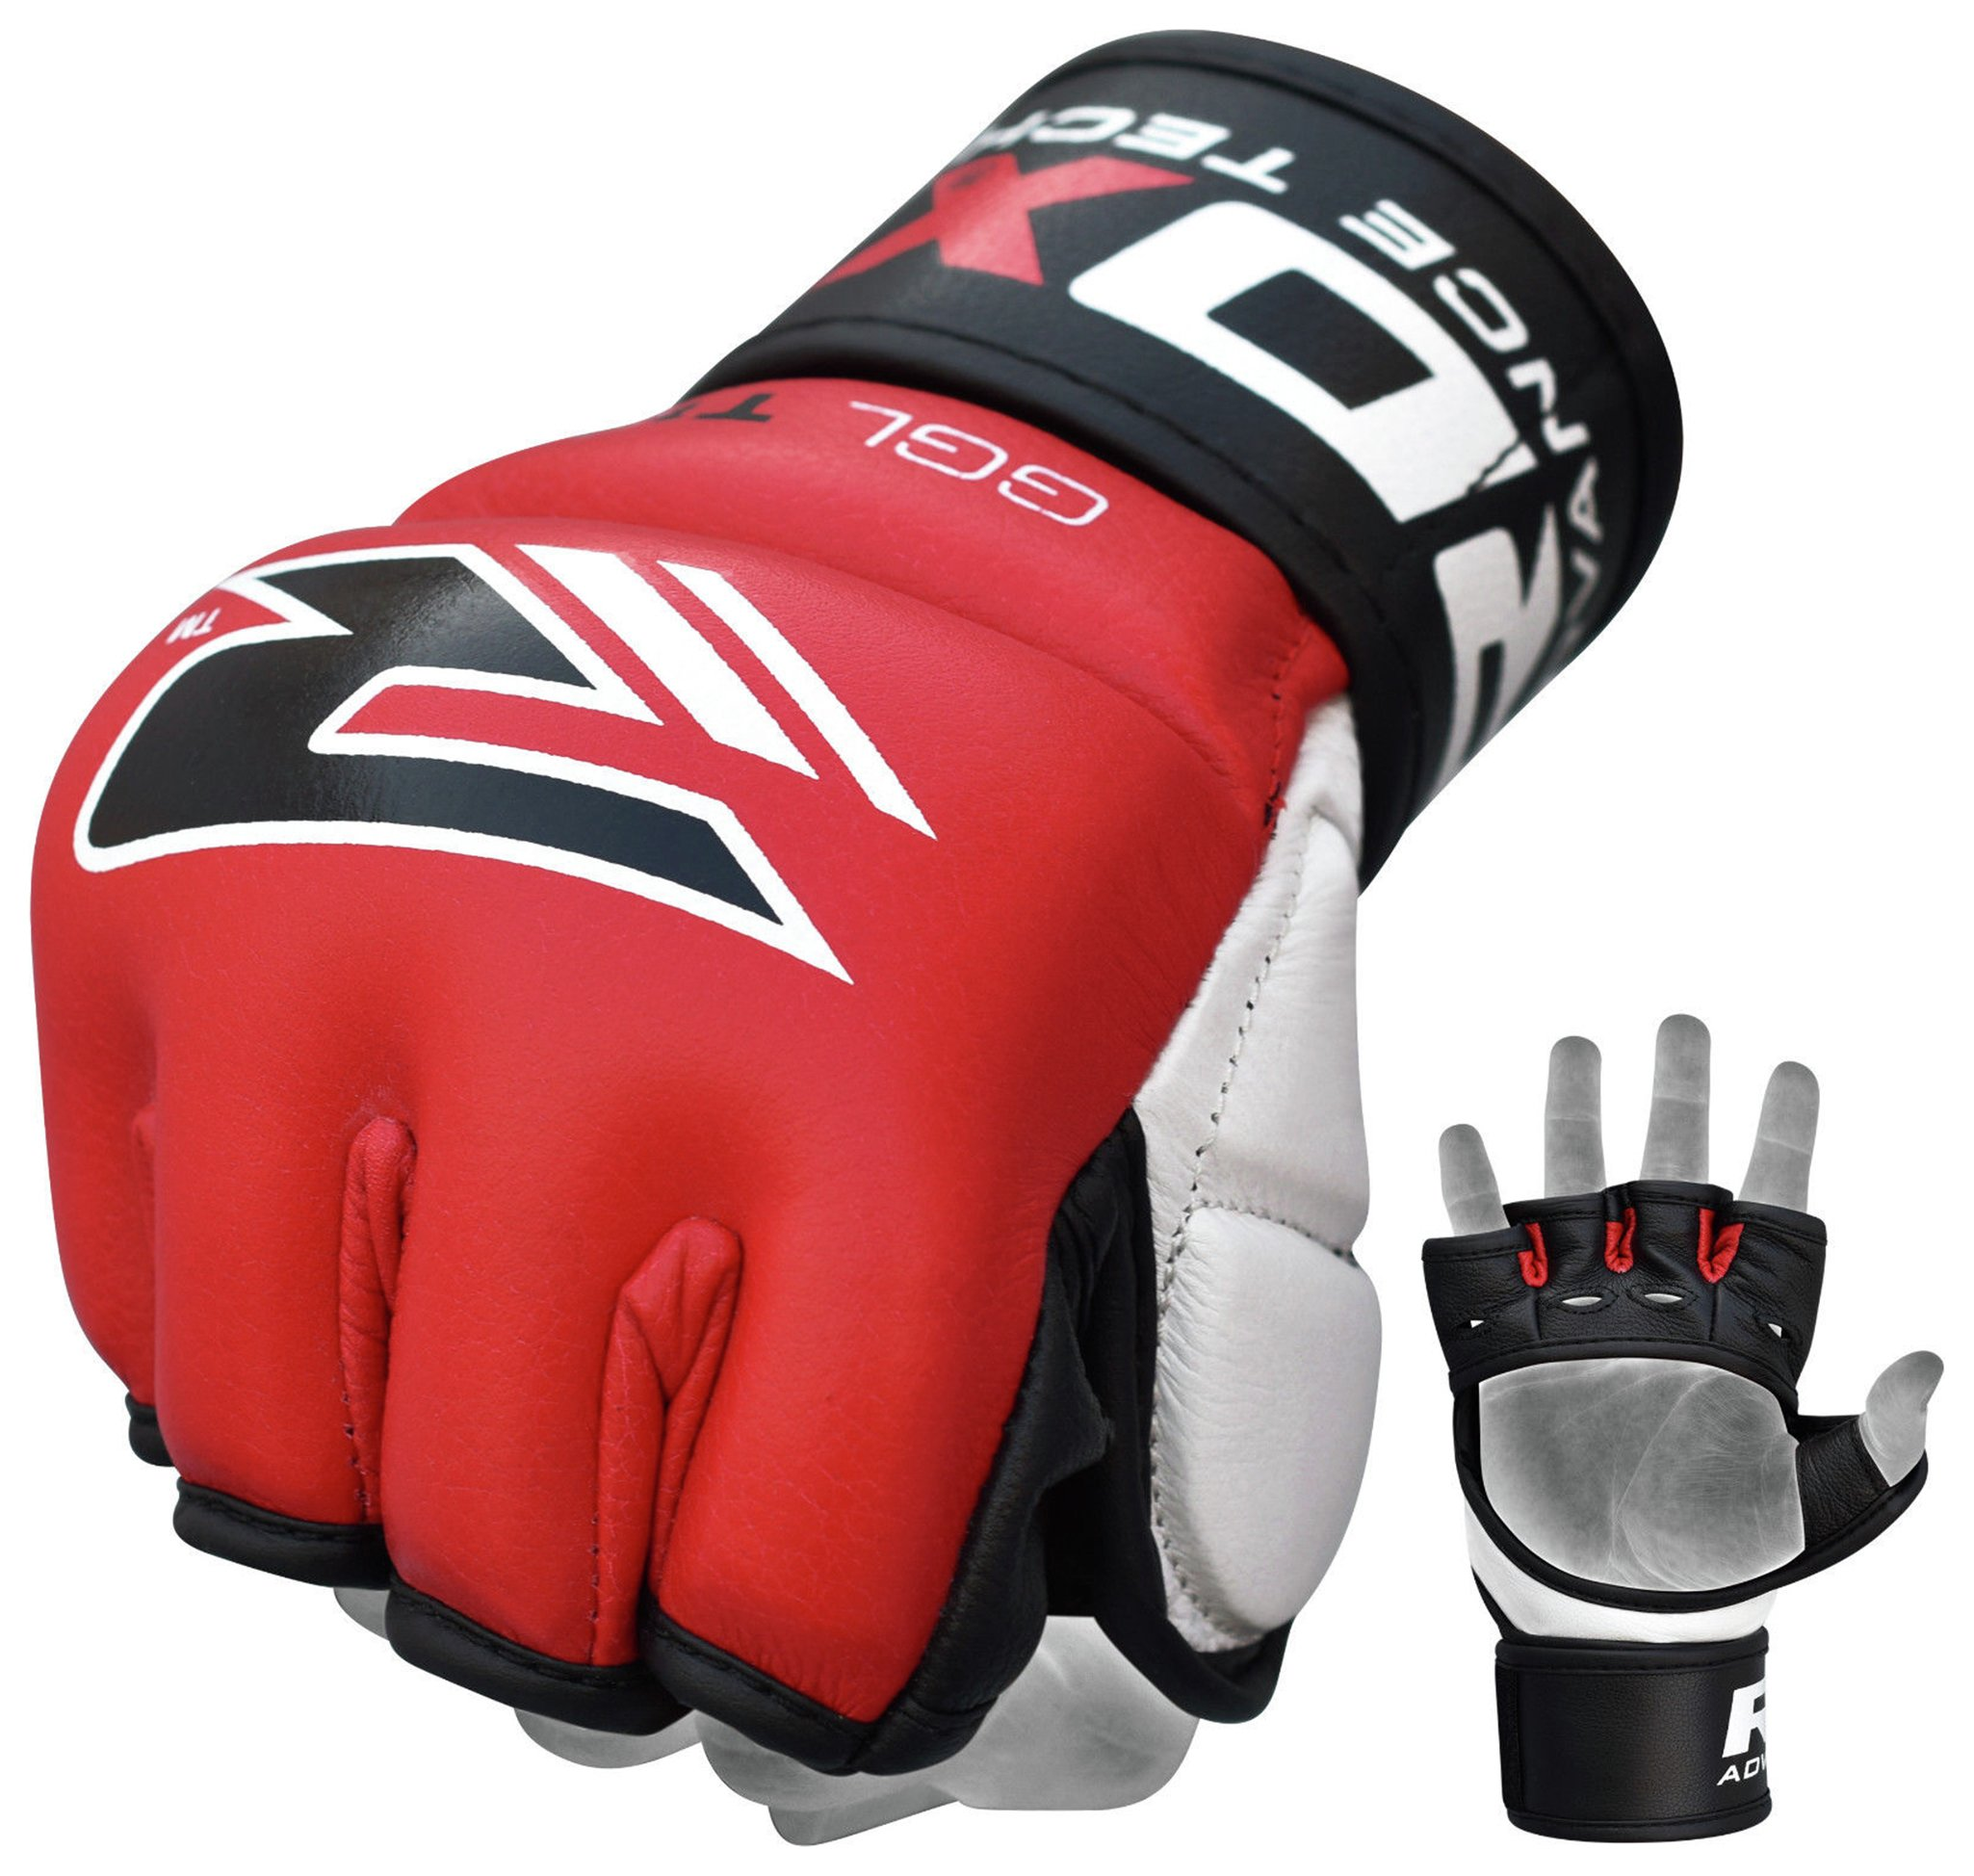 RDX - Leather 7oz Mixed Martial Arts Gloves - Red lowest price